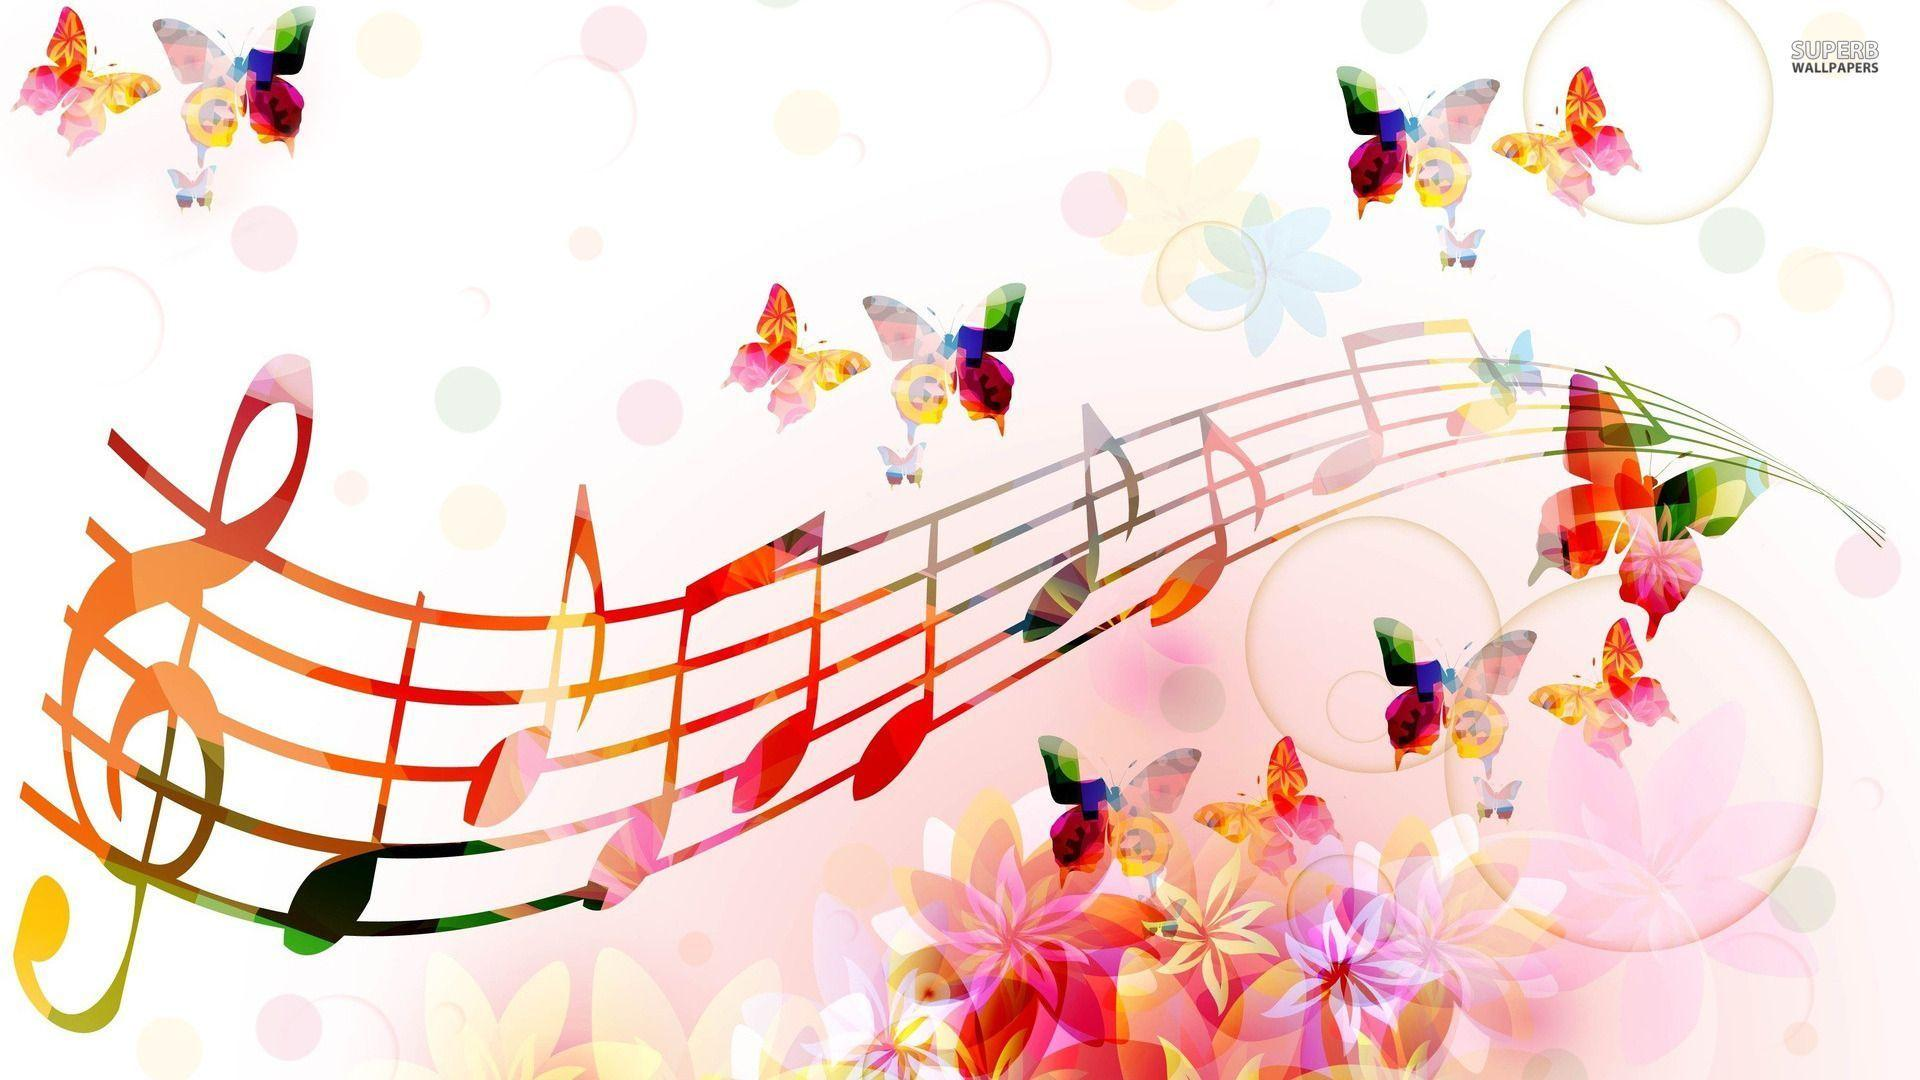 Wallpapers For > Abstract Music Notes Wallpapers